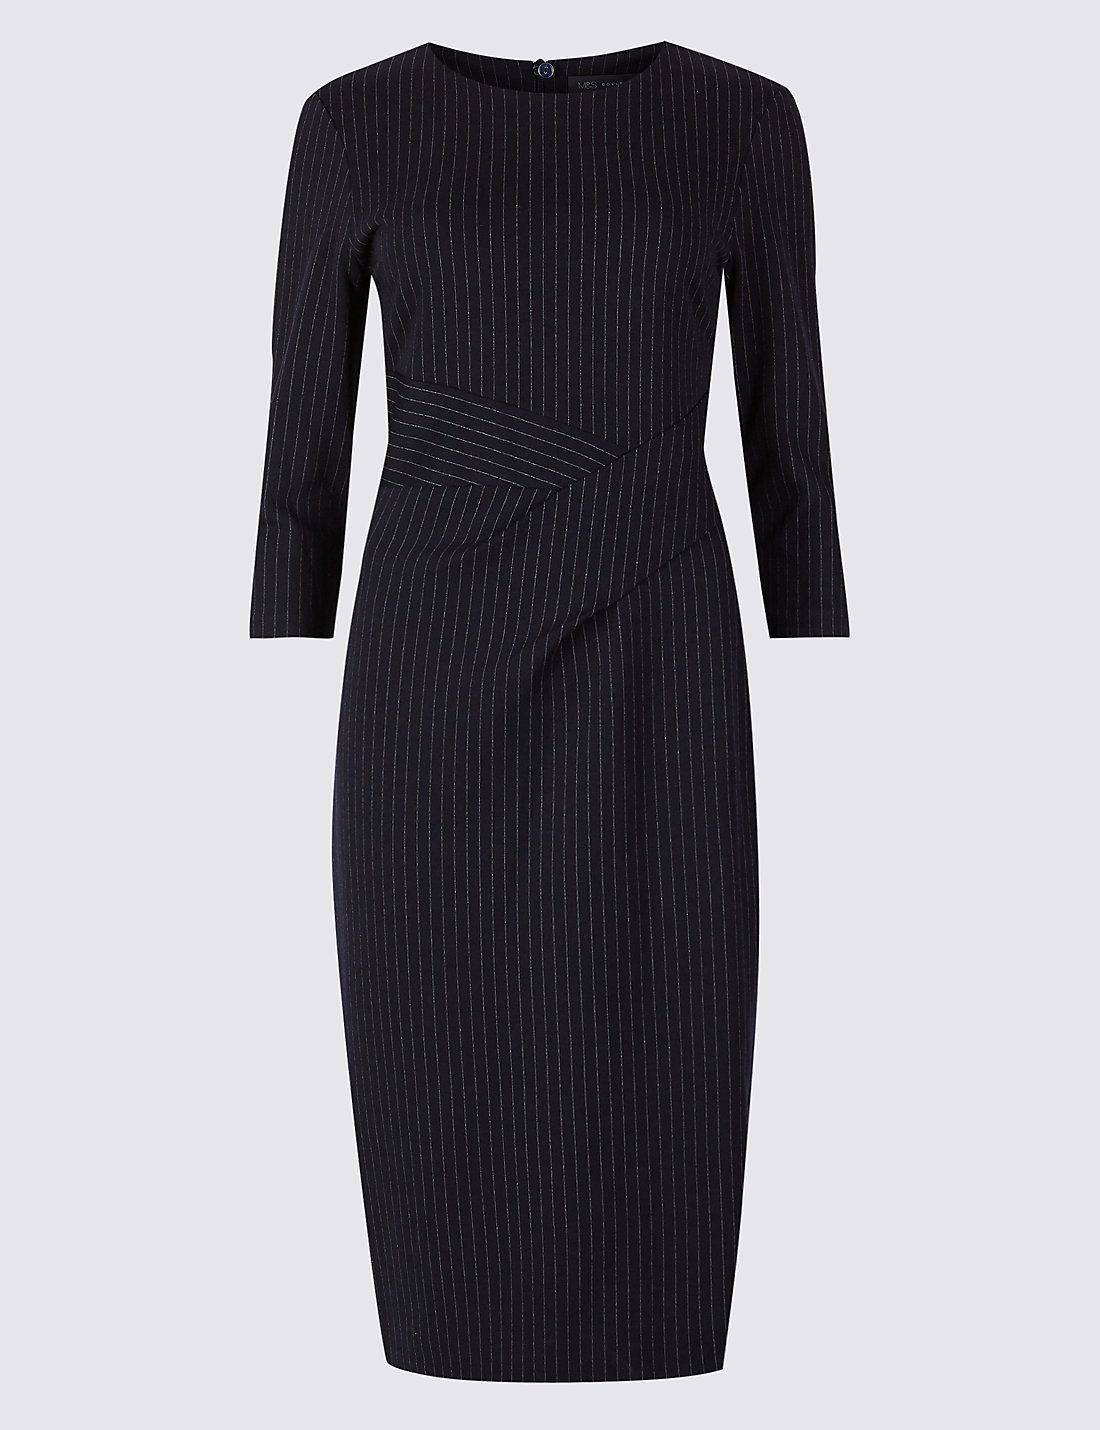 Marks and spencer bodycon dresses and tops